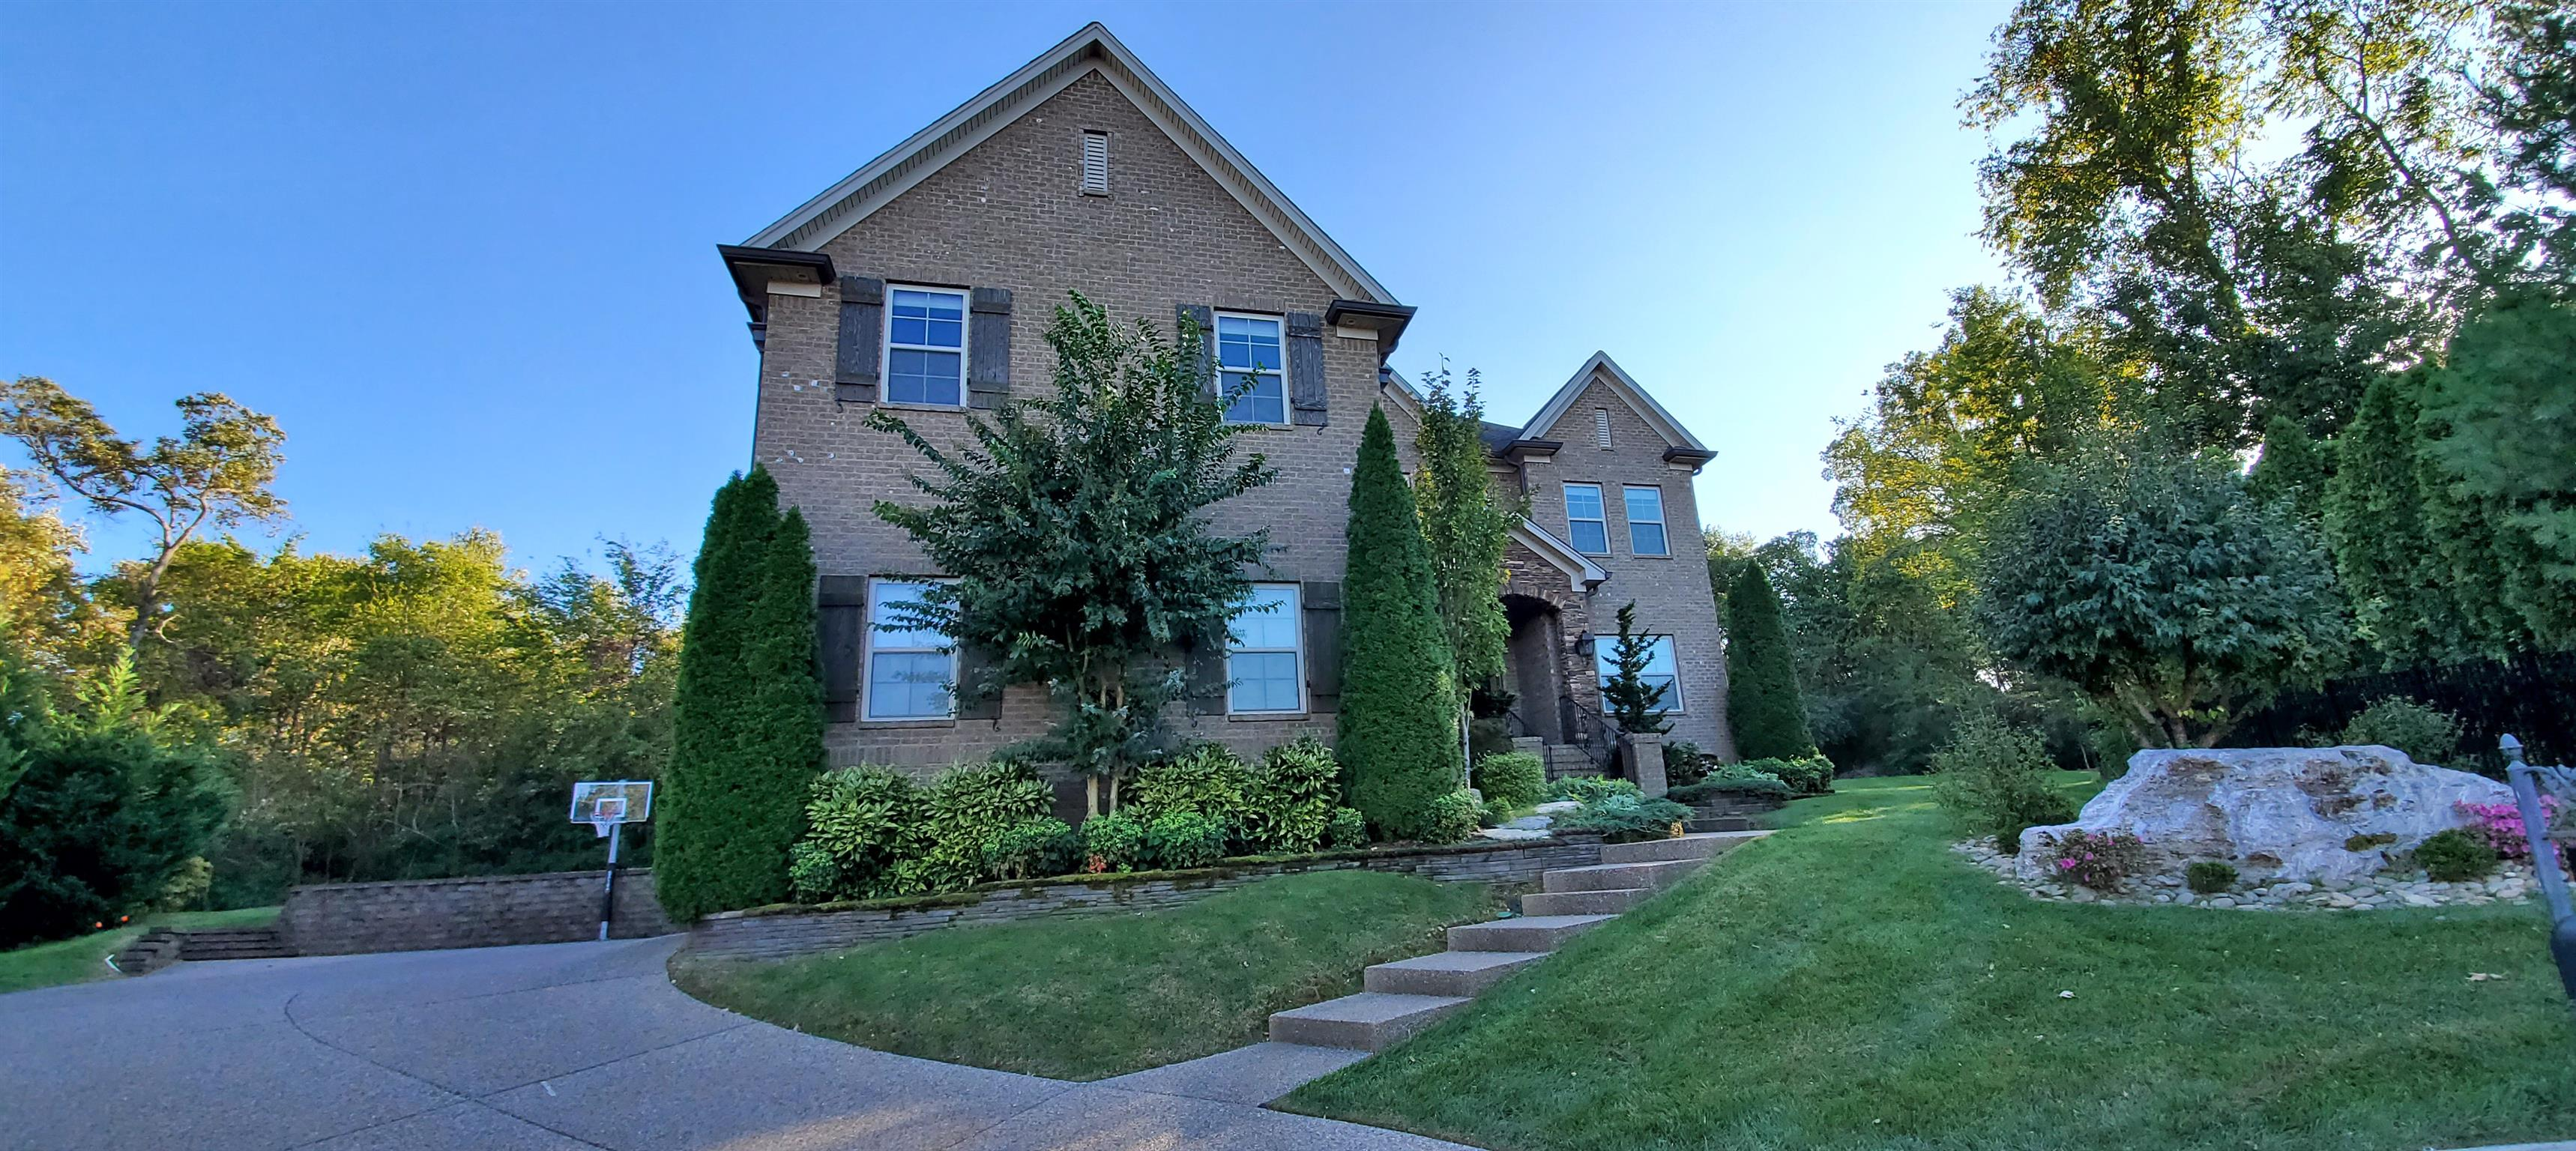 1989 Brisbane Dr, Spring Hill, TN 37174 - Spring Hill, TN real estate listing